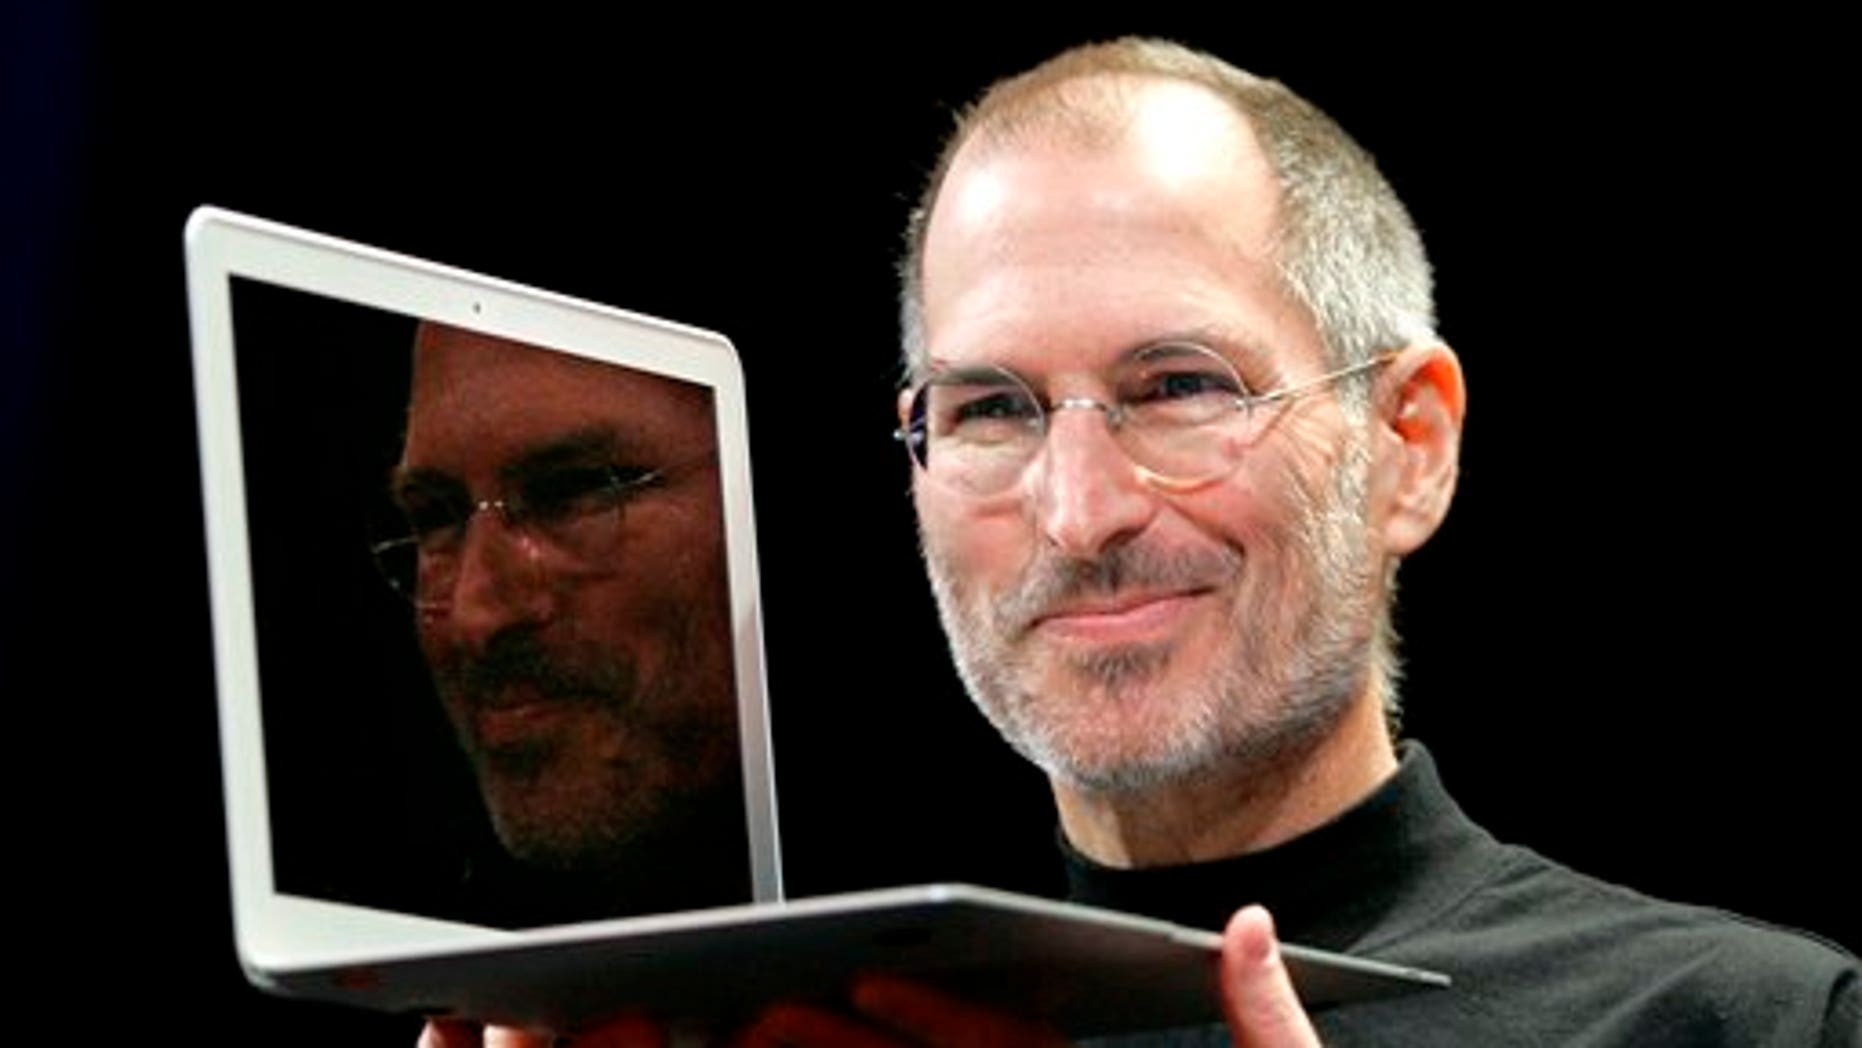 Steve Jobs was shocked by how successful the App Store was